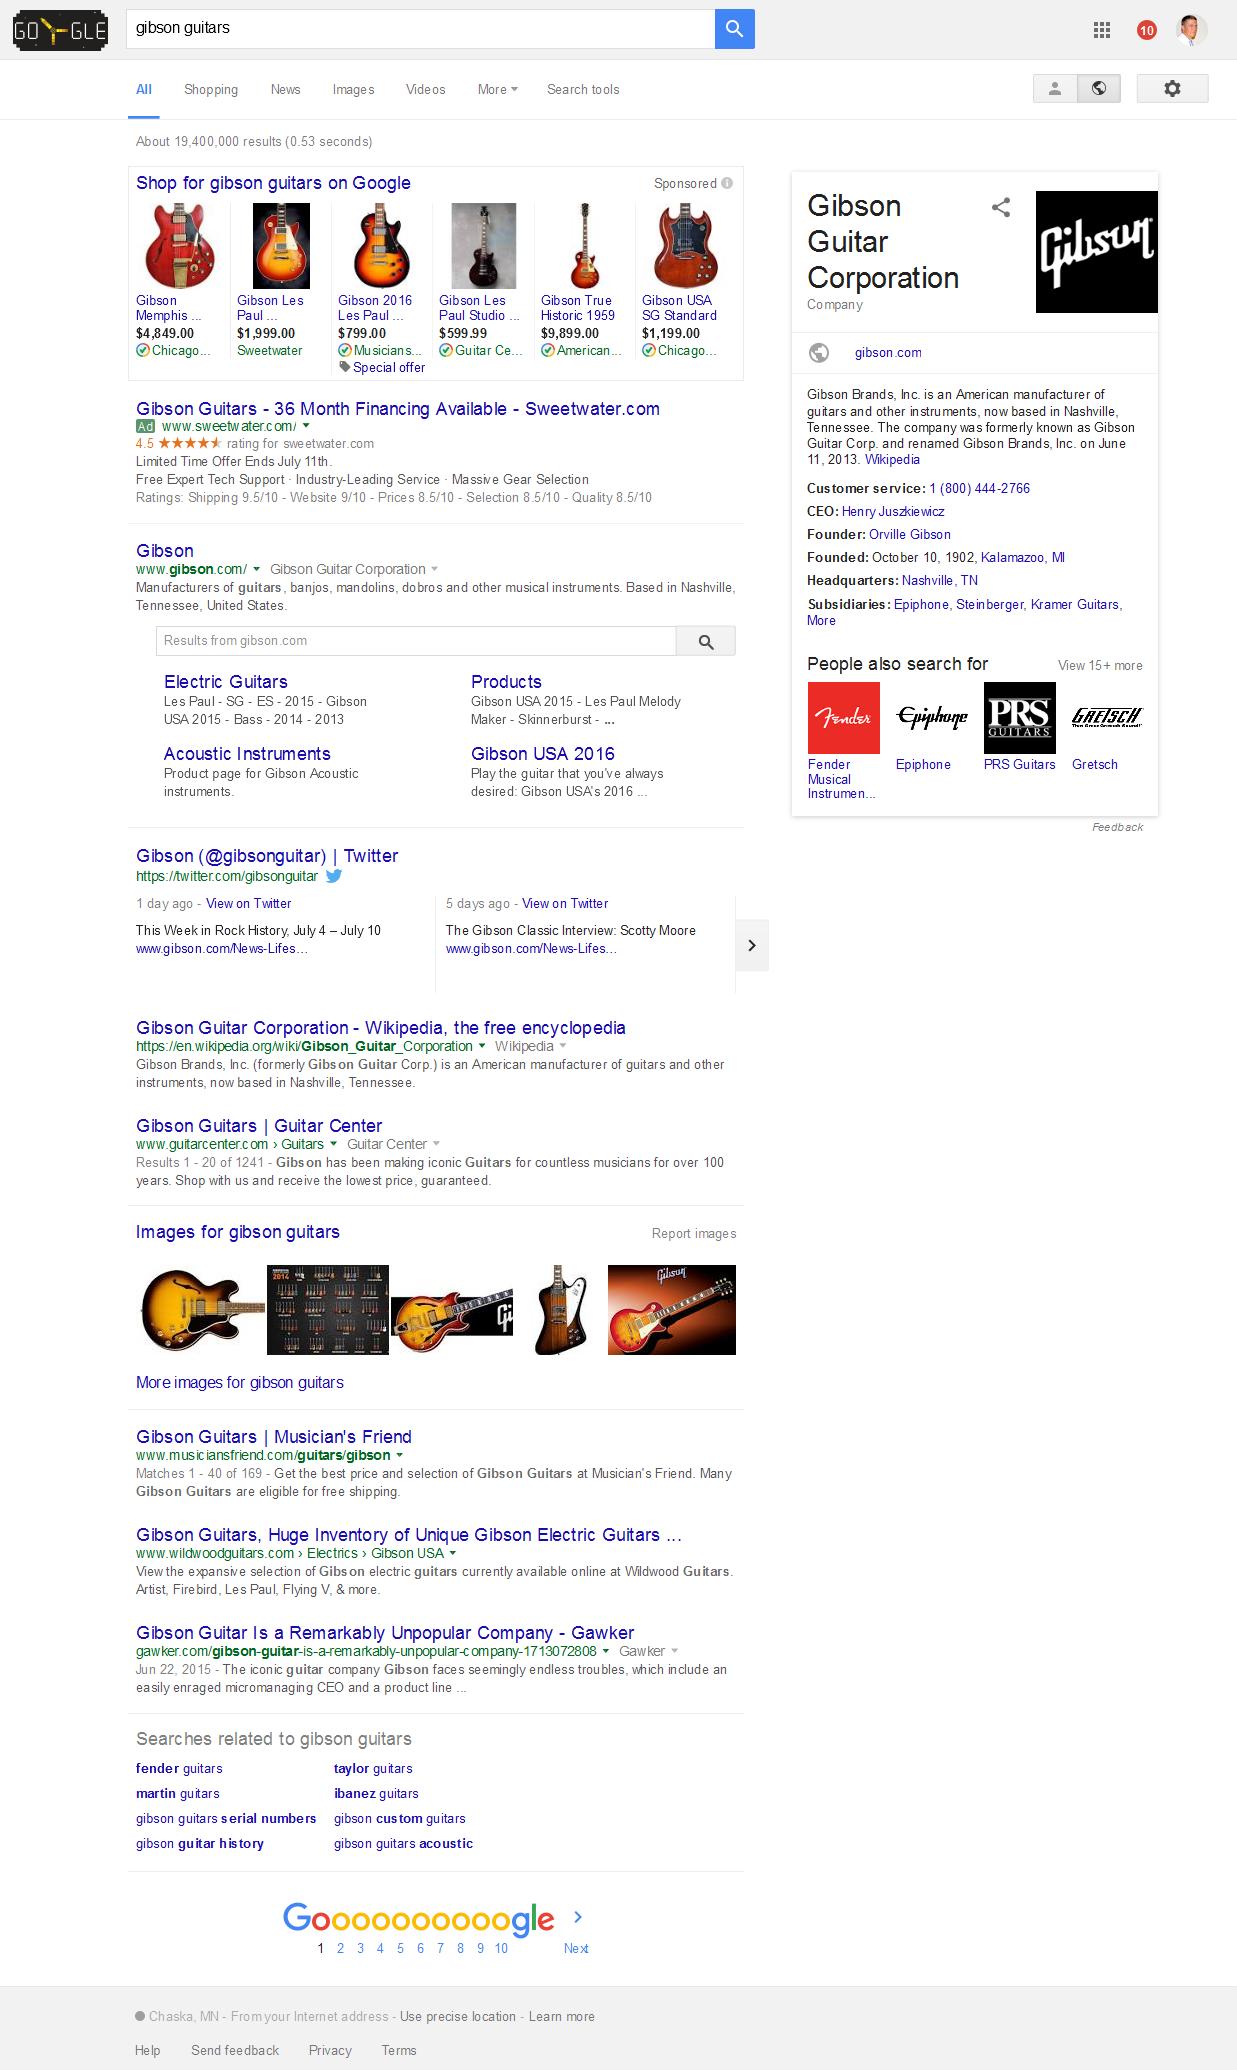 Screenshot - Gibson Guitars - Google SERPS - 2016-07-05